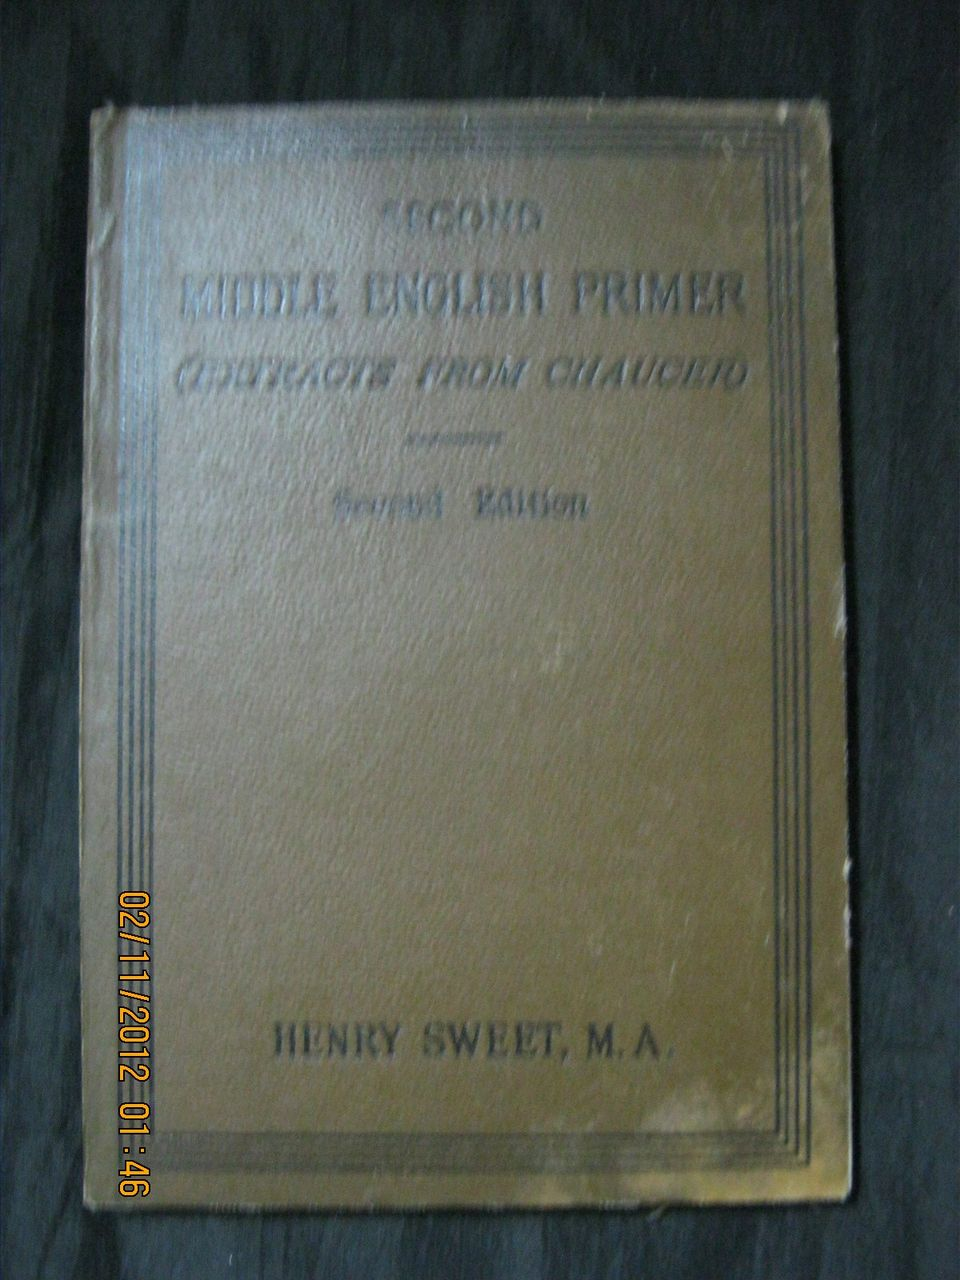 Second Middle English PRIMER  (Extracts from Chaucer) 1892